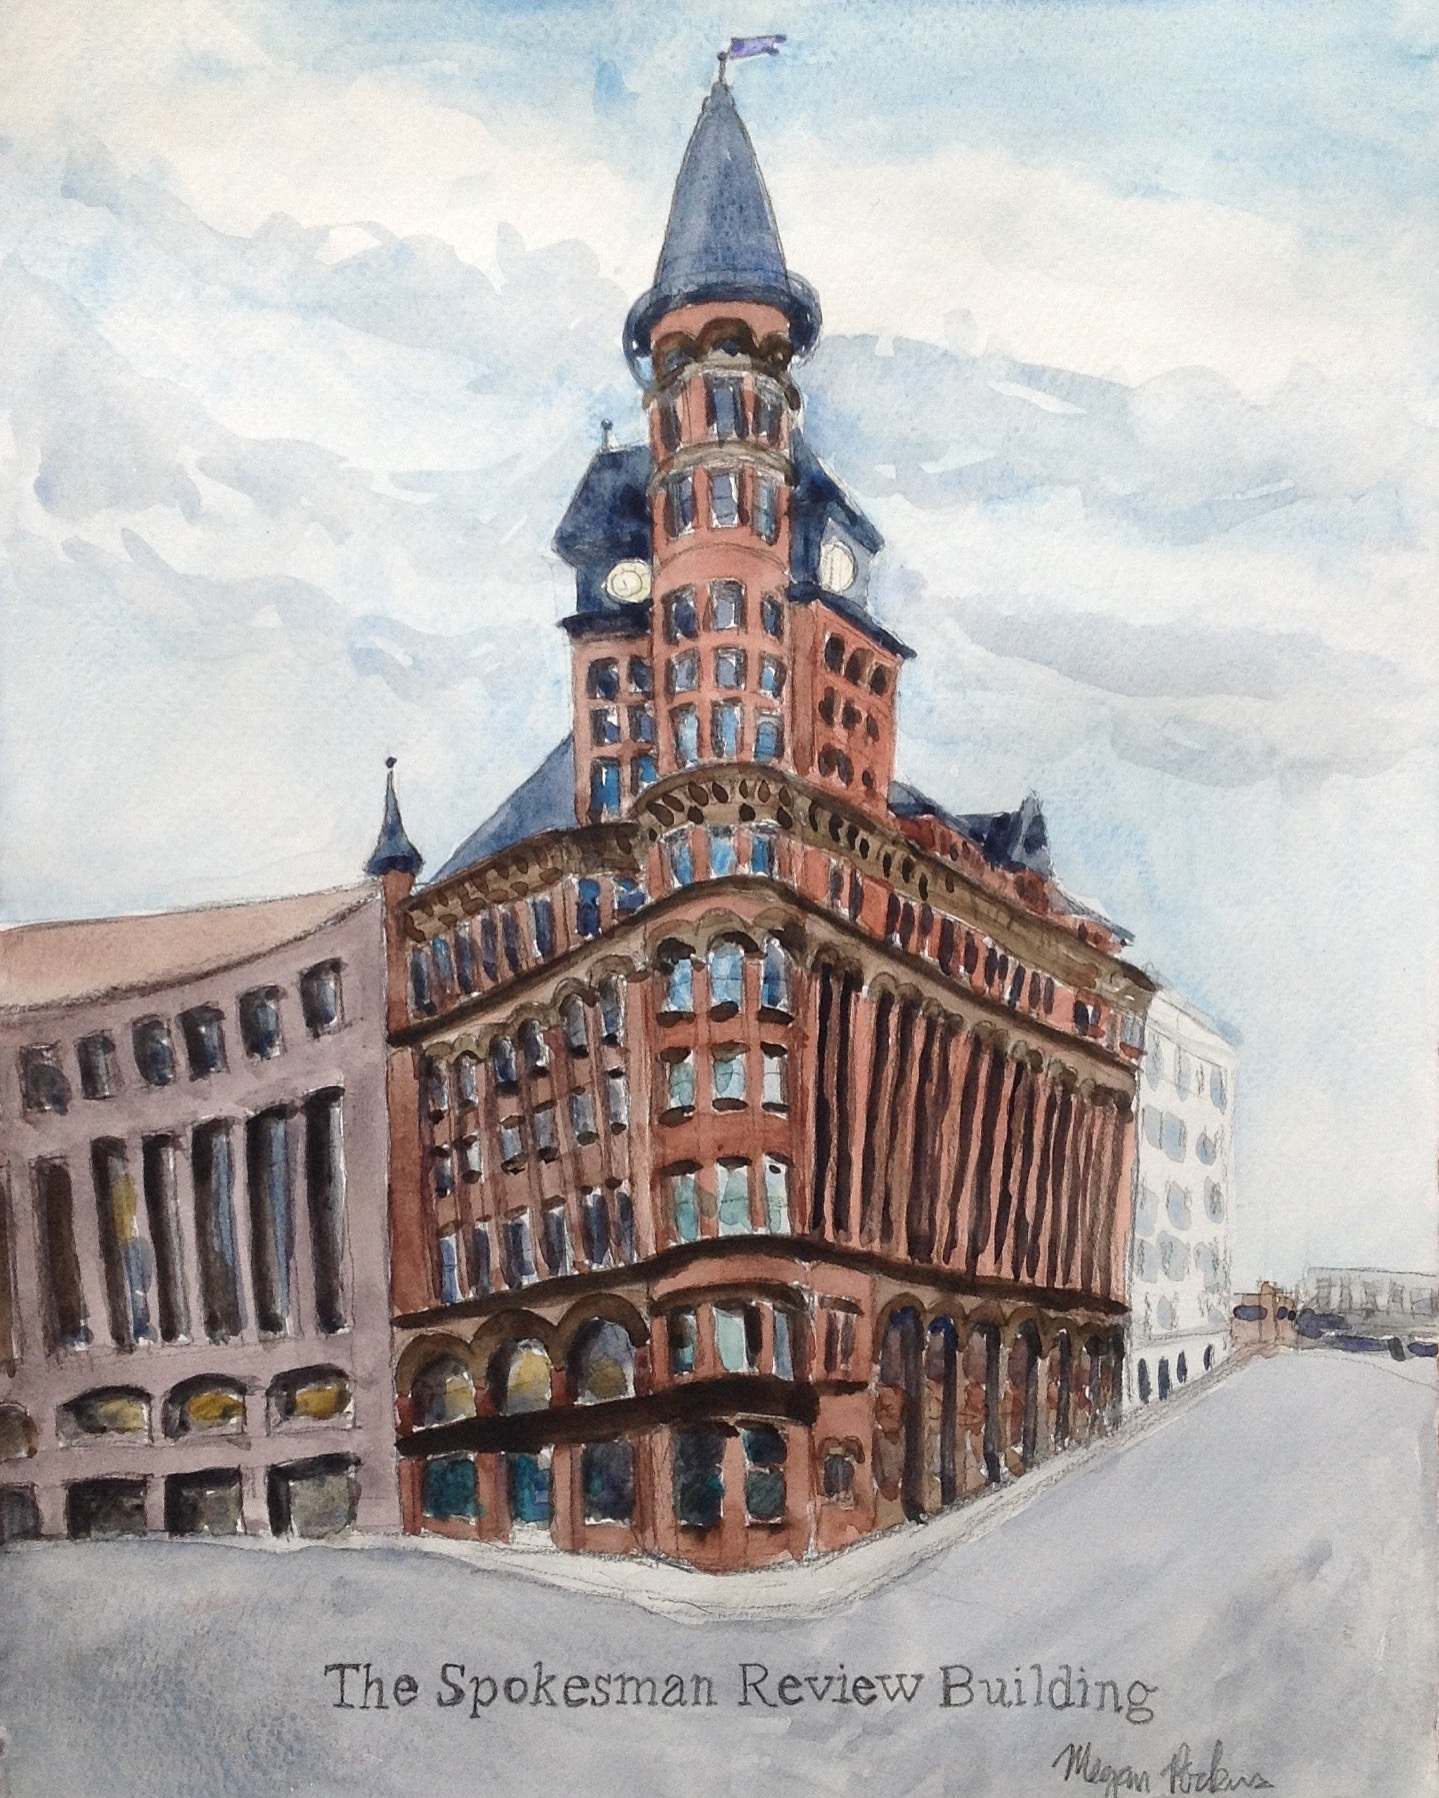 From January to May, I completed the last 20 weeks of my Artist's Eye on Spokane painting challenge. The Spokesman Review was a favorite painting!